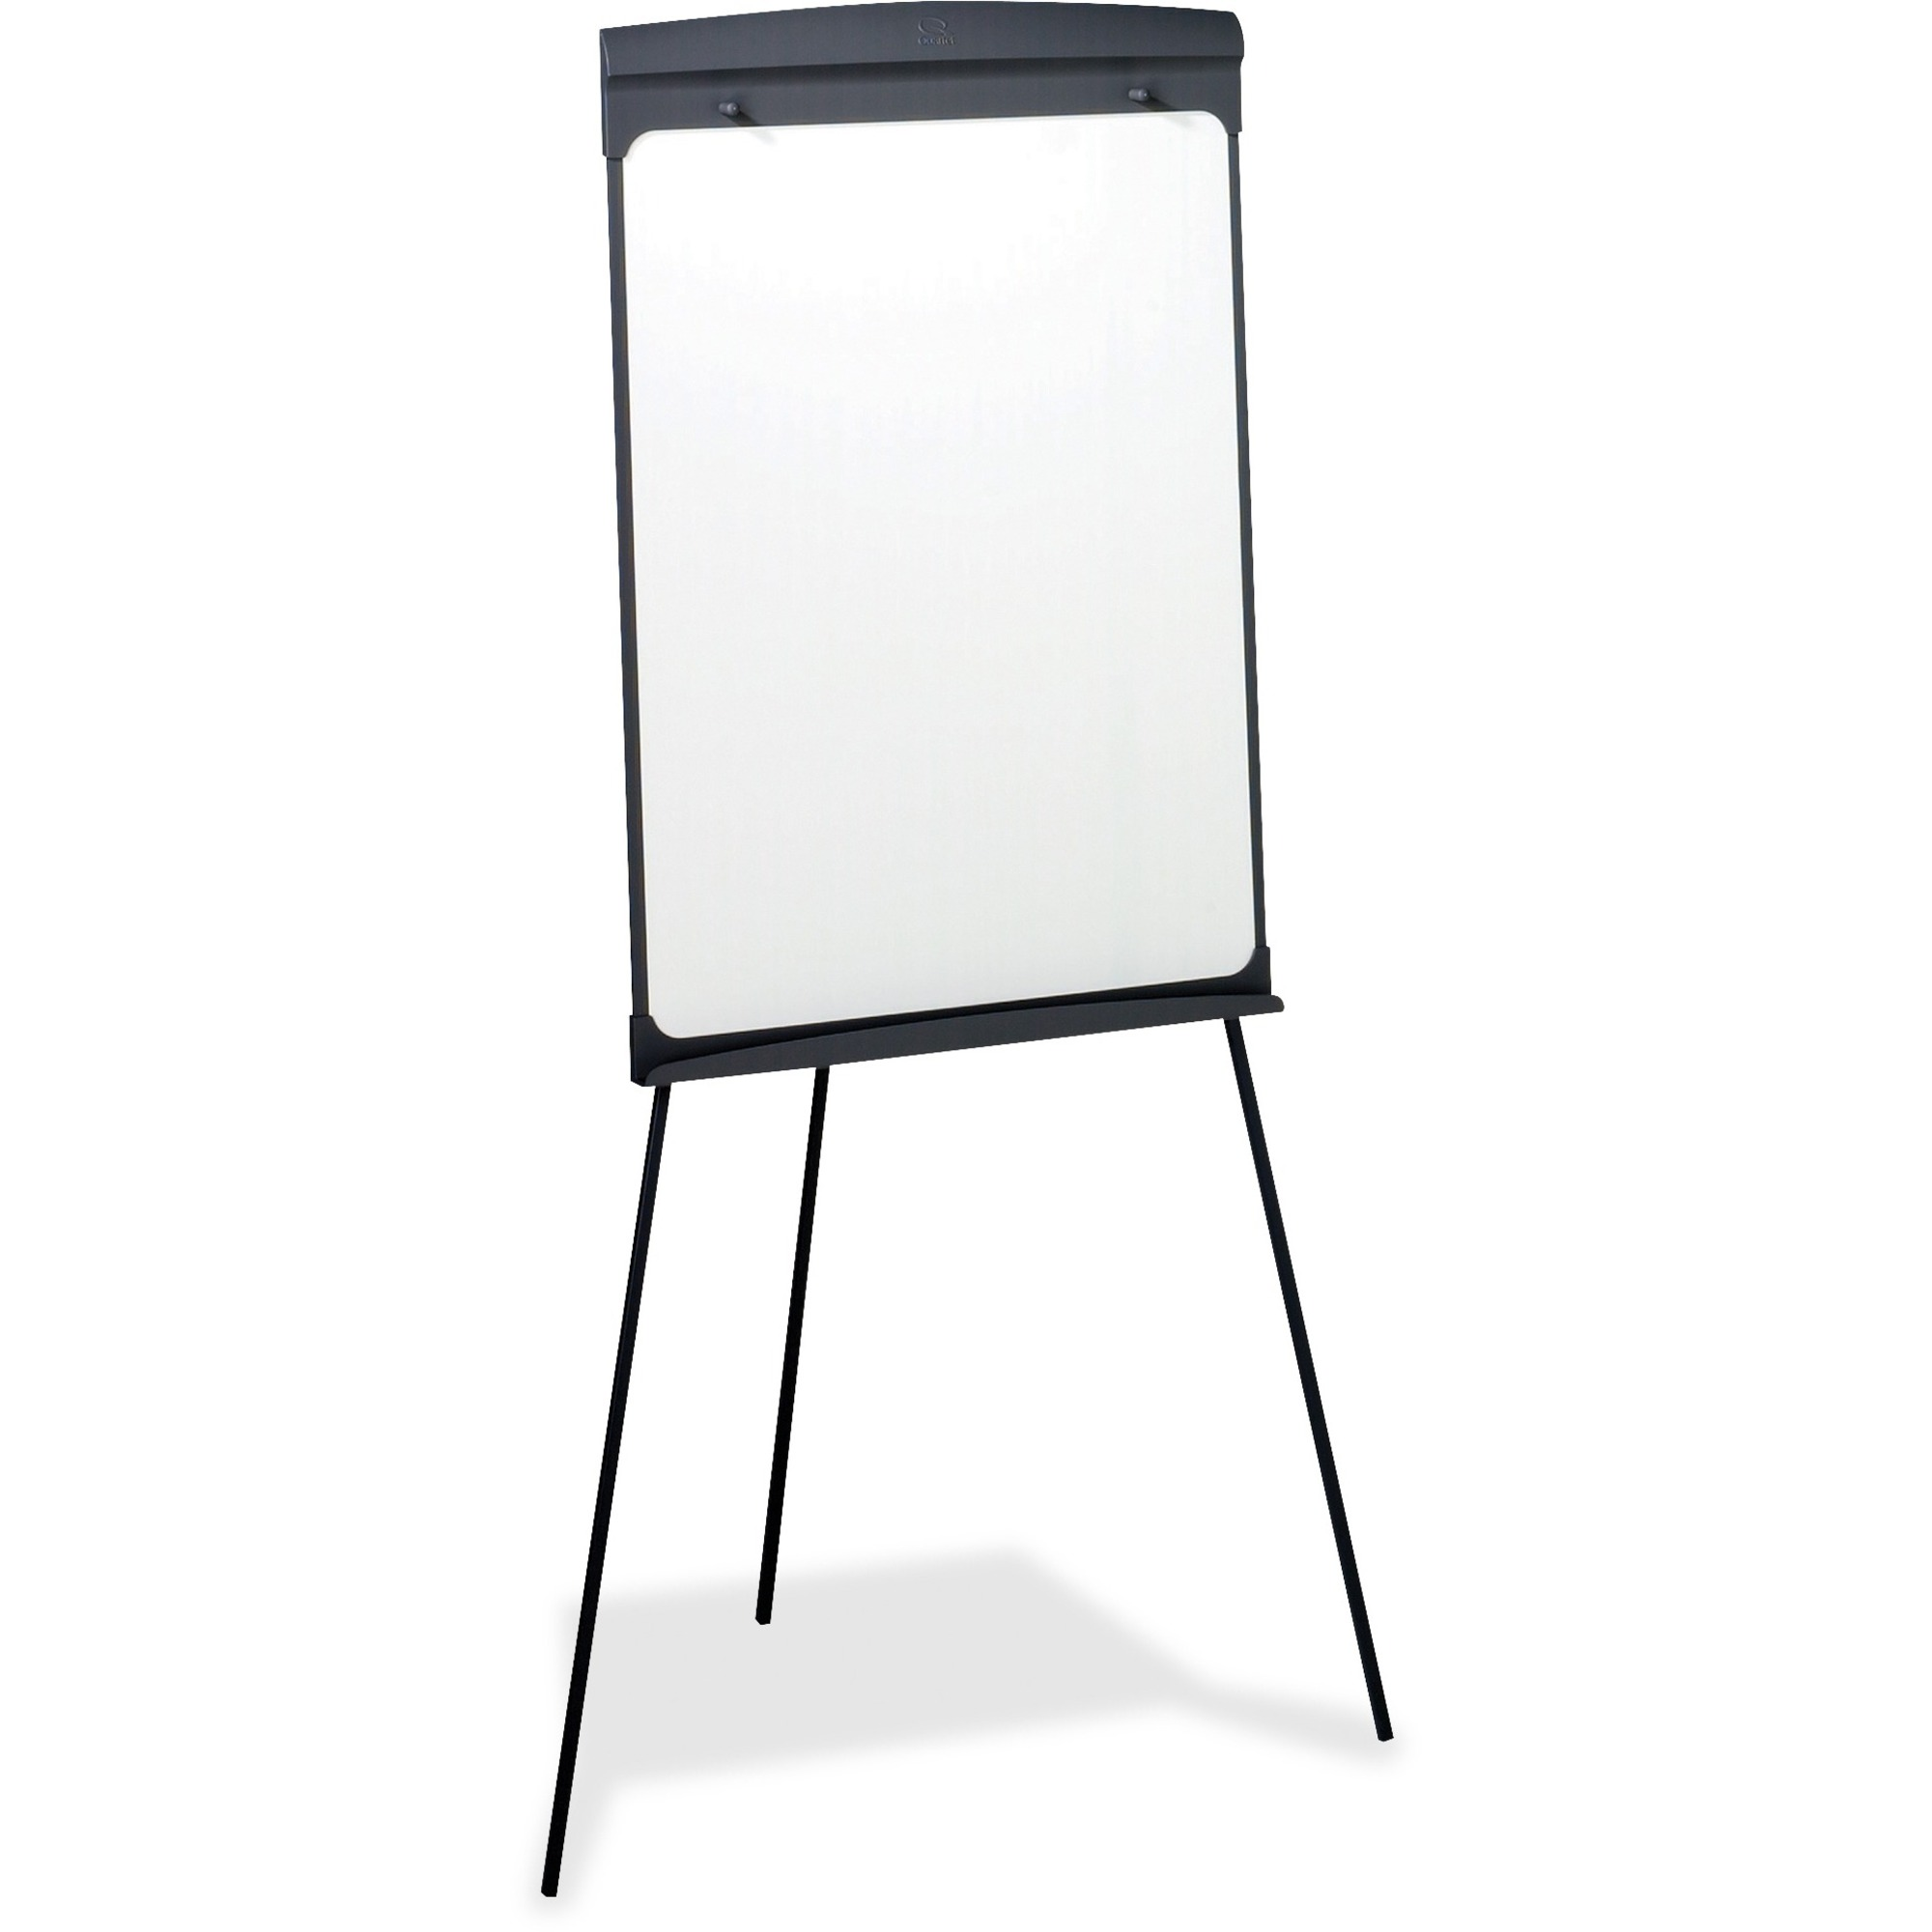 Acco Brands Corporation Quartet® Standard Presentation Easel, Magnetic Whiteboared/flipchart, 27 X 35, Graphite Finish Frame - 27 (2.2 Ft) Width X 35 (2.9 Ft) Height - White Painted Steel Surface - Graphite Frame - Vertical - 1 Each